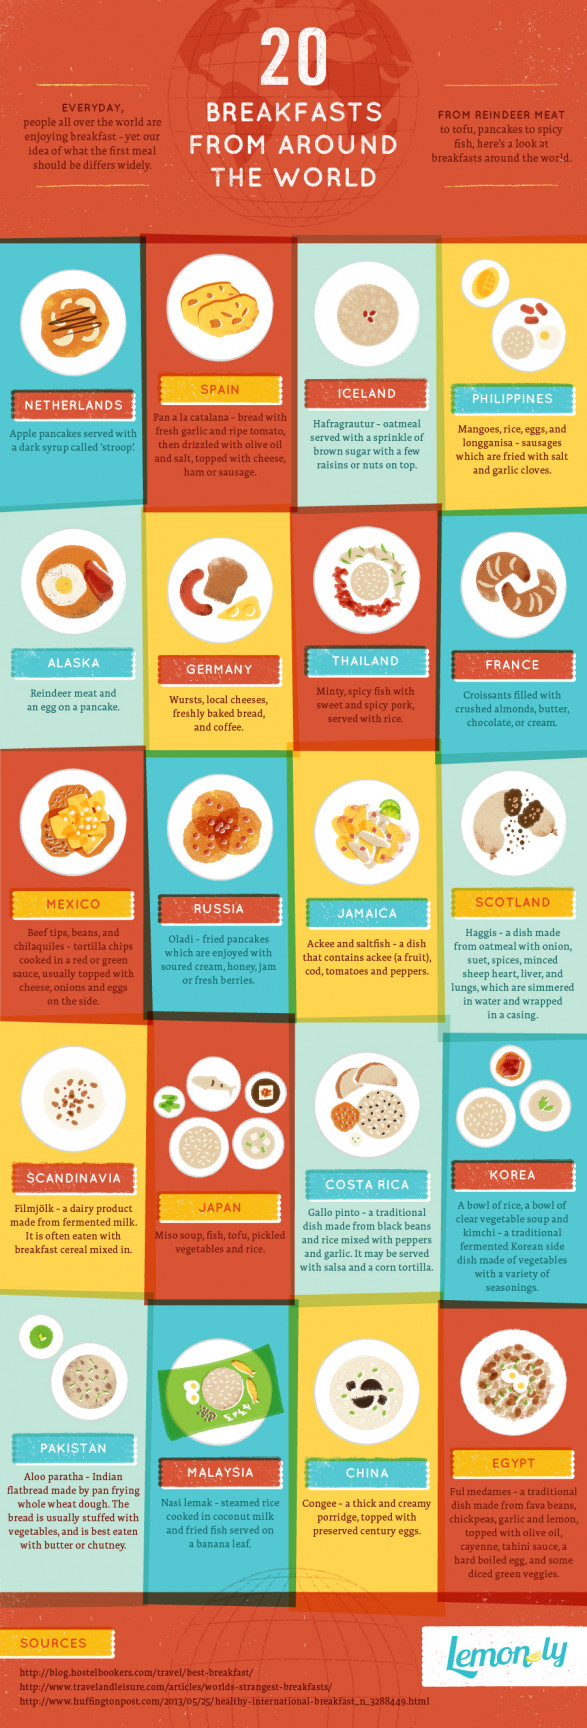 20 Breakfasts From Around the World - Infographic